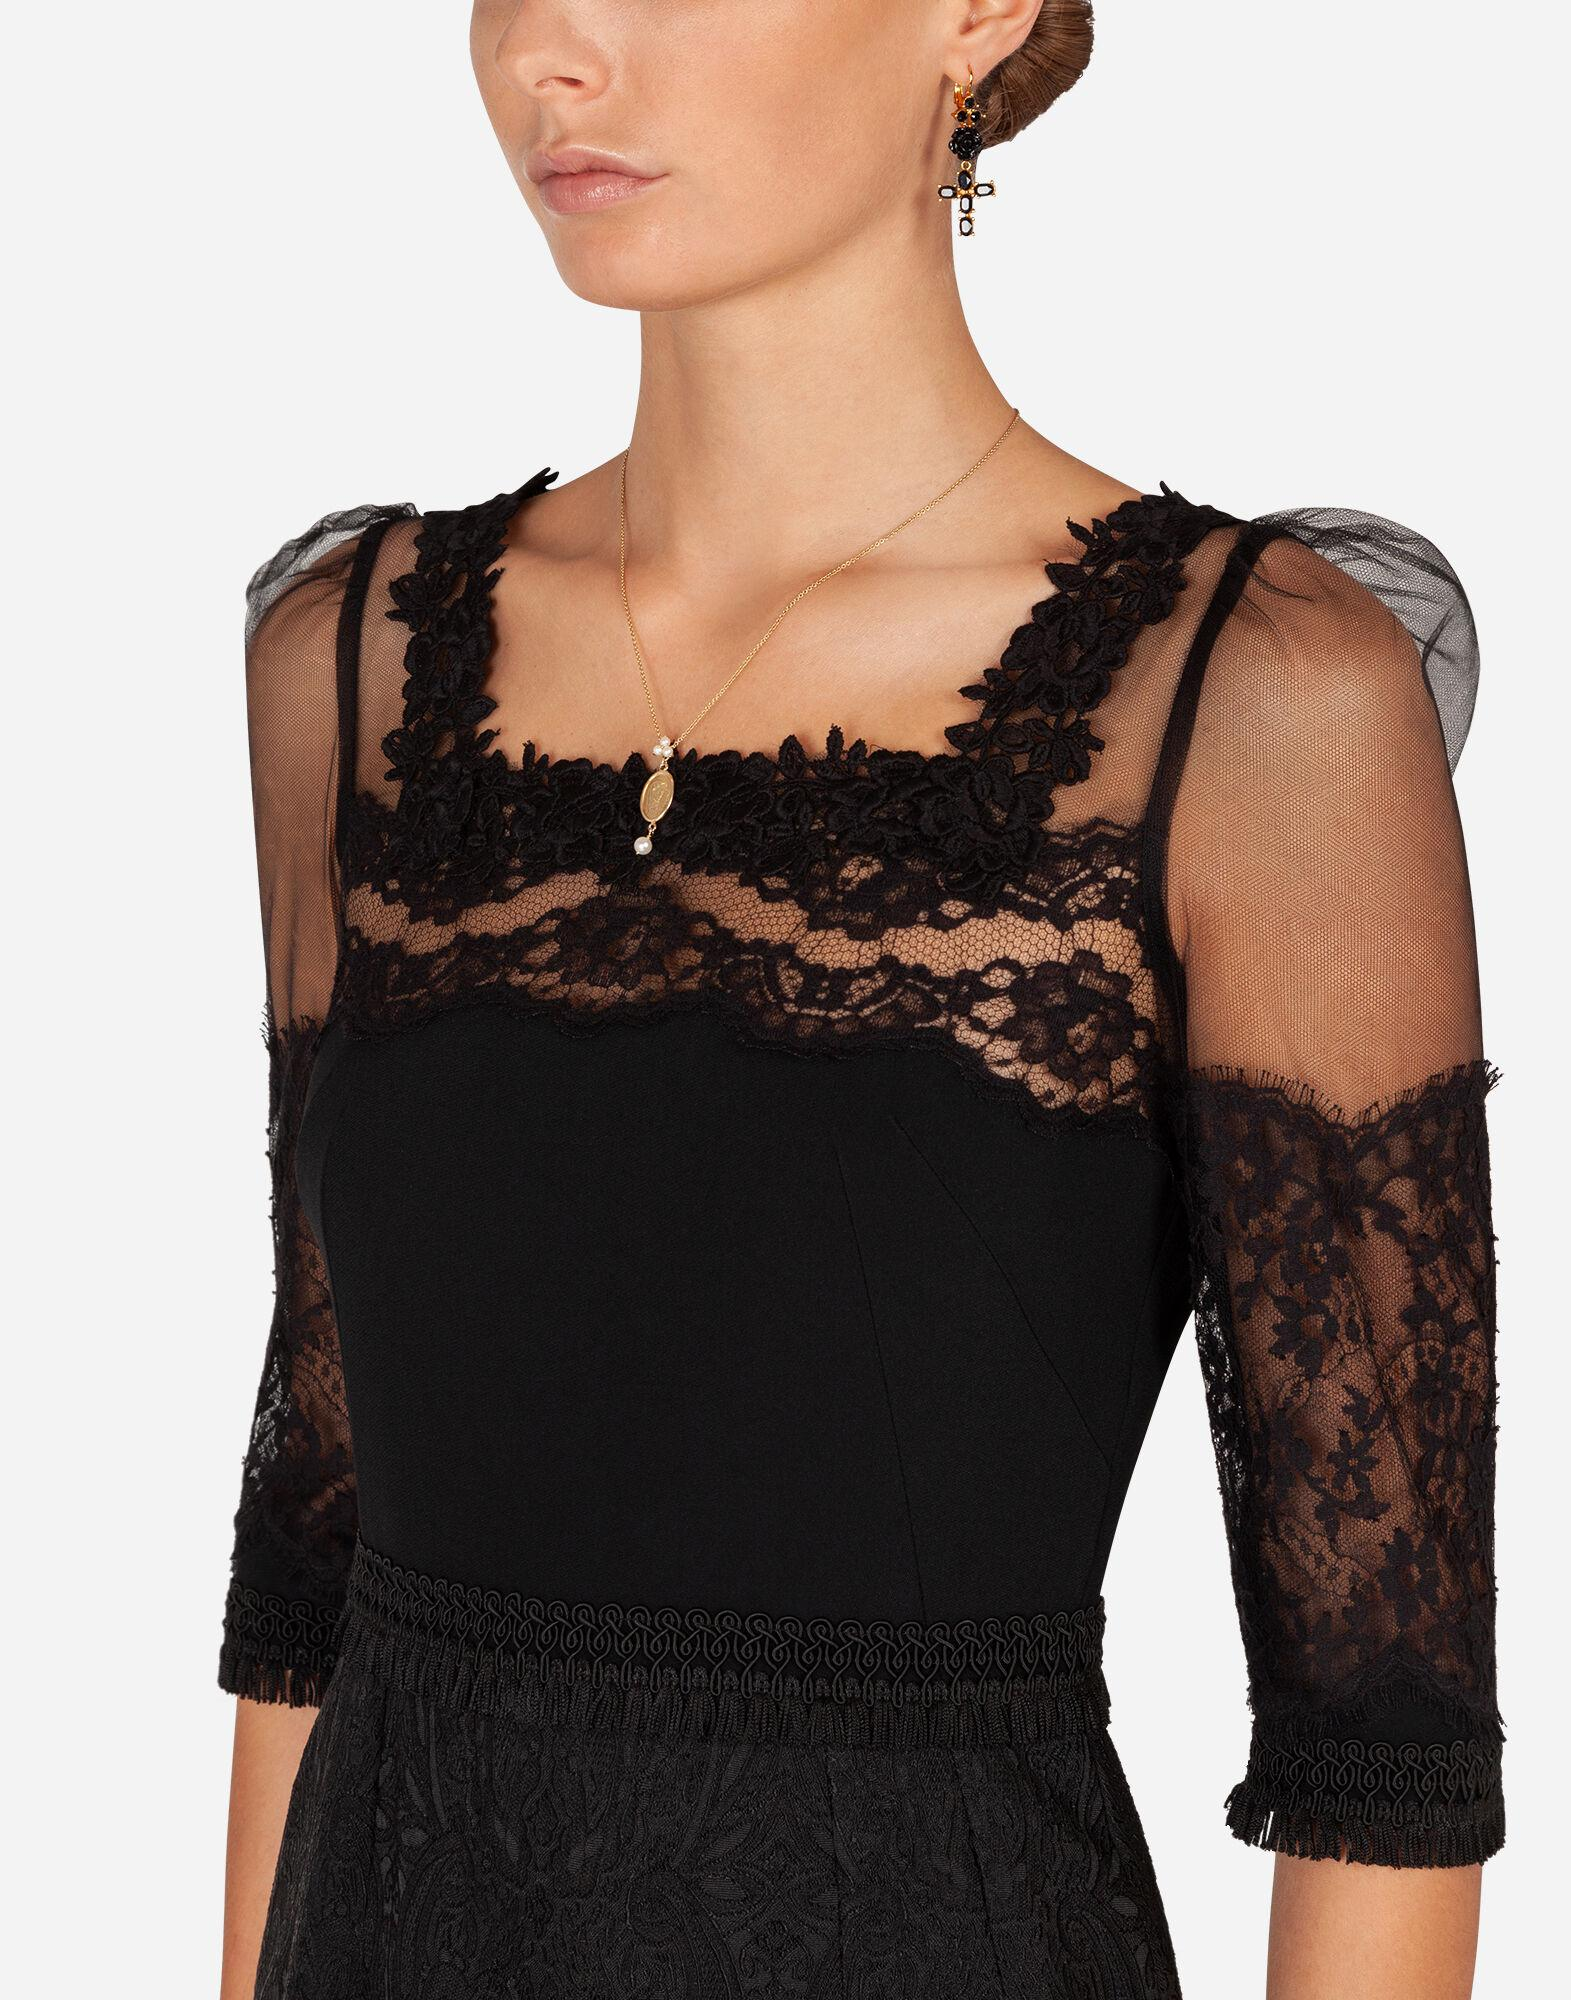 Cady and brocade midi dress with lace inserts 2